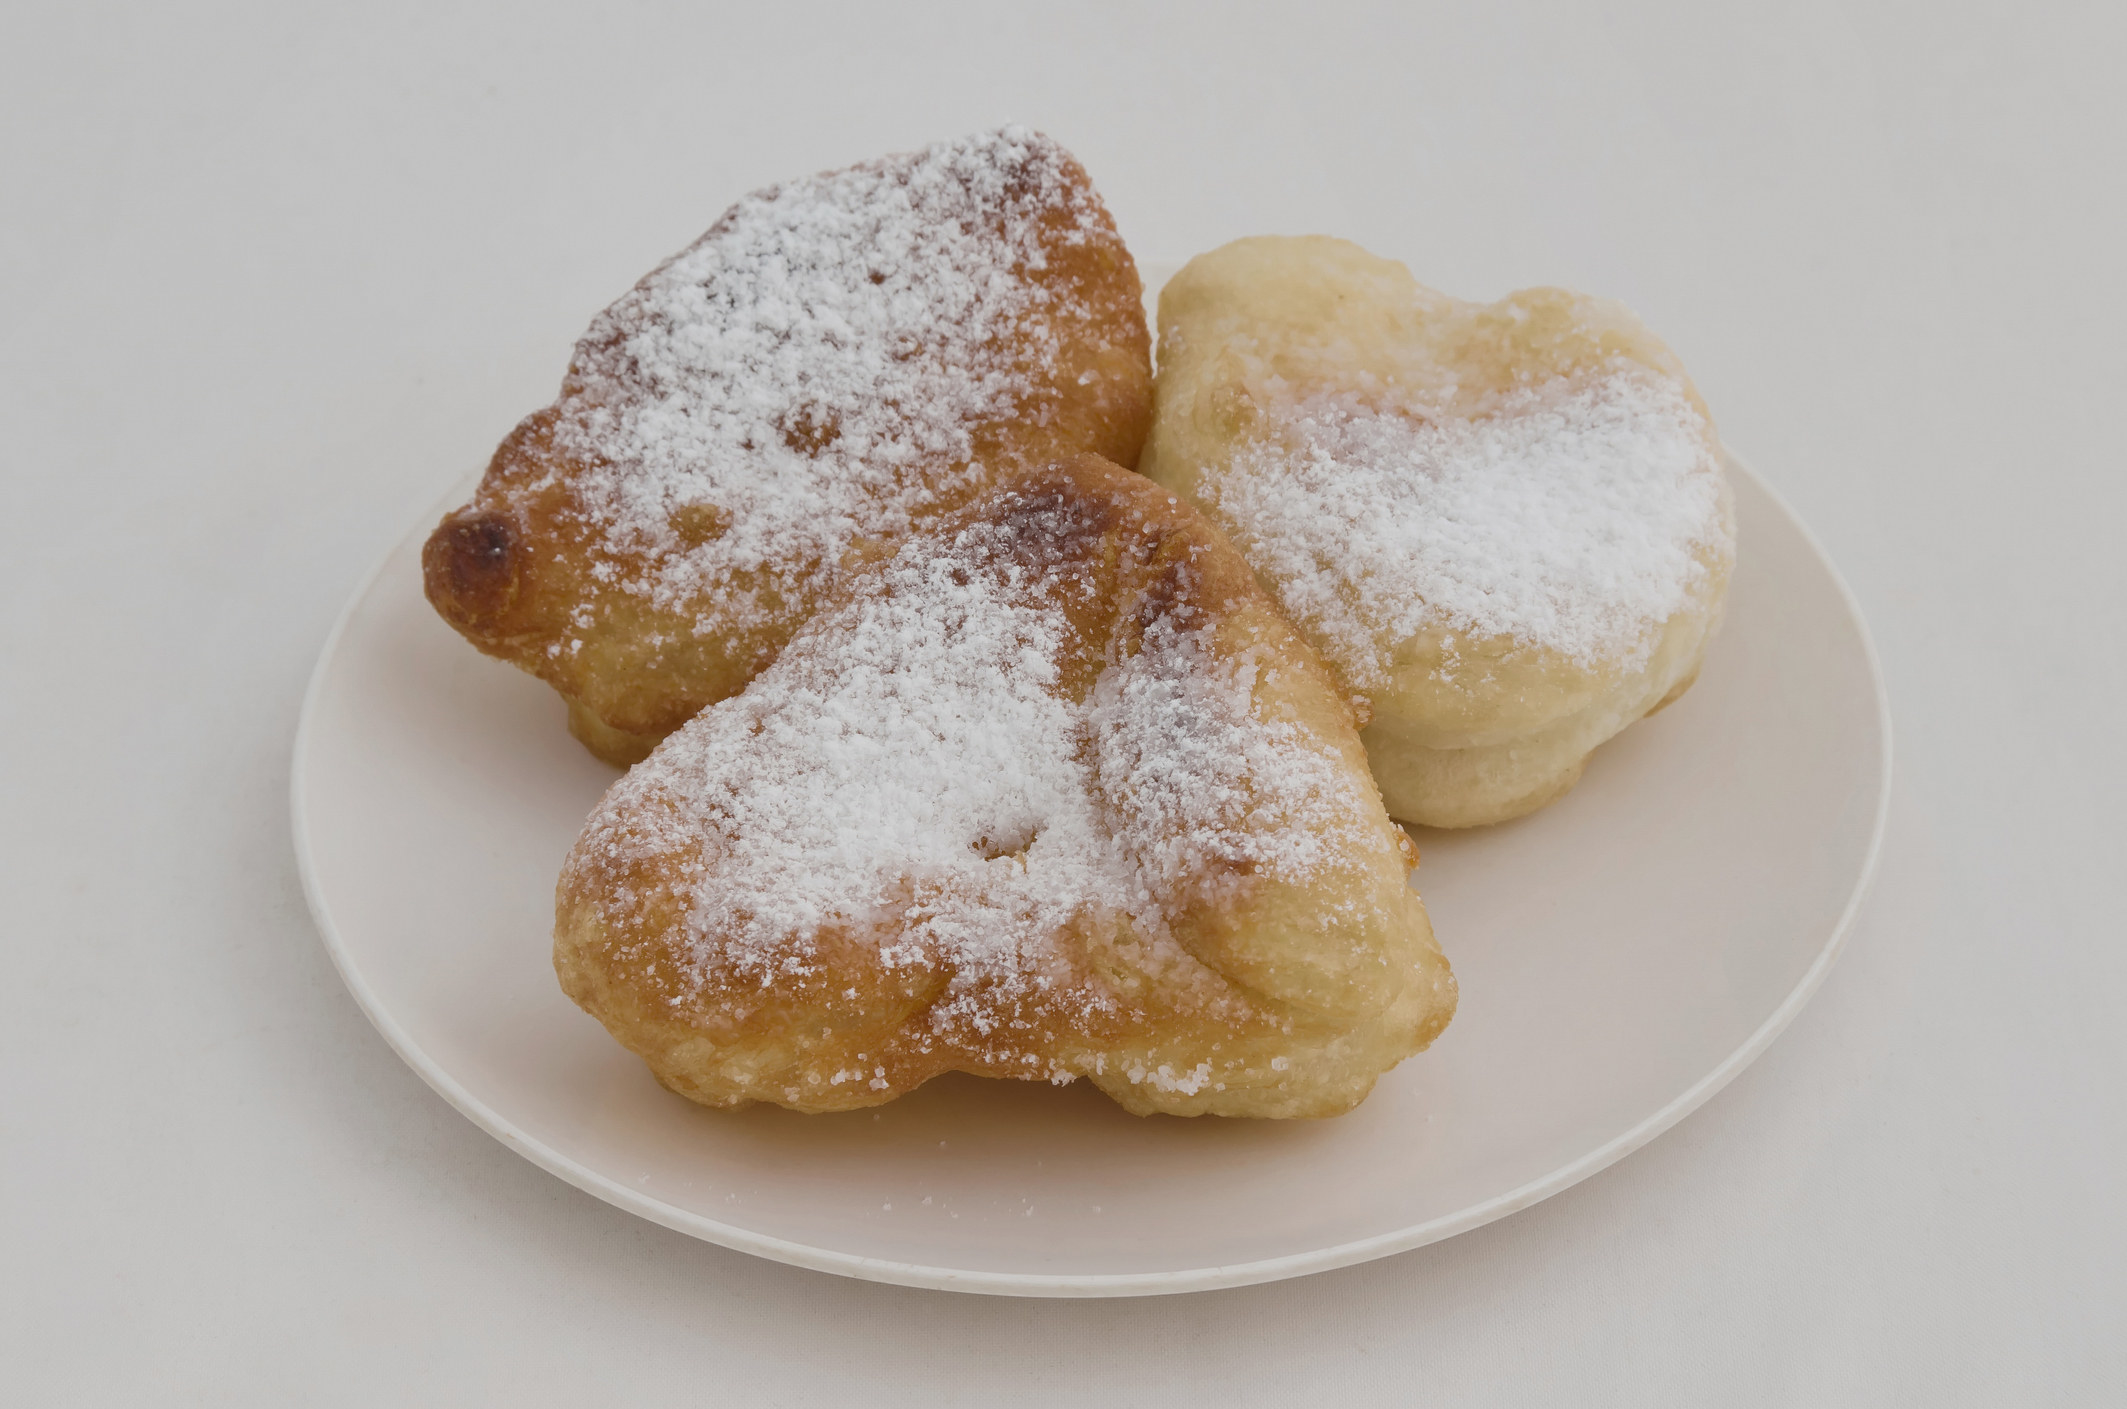 plate of three fried balls of dough sprinkled with powdered sugar